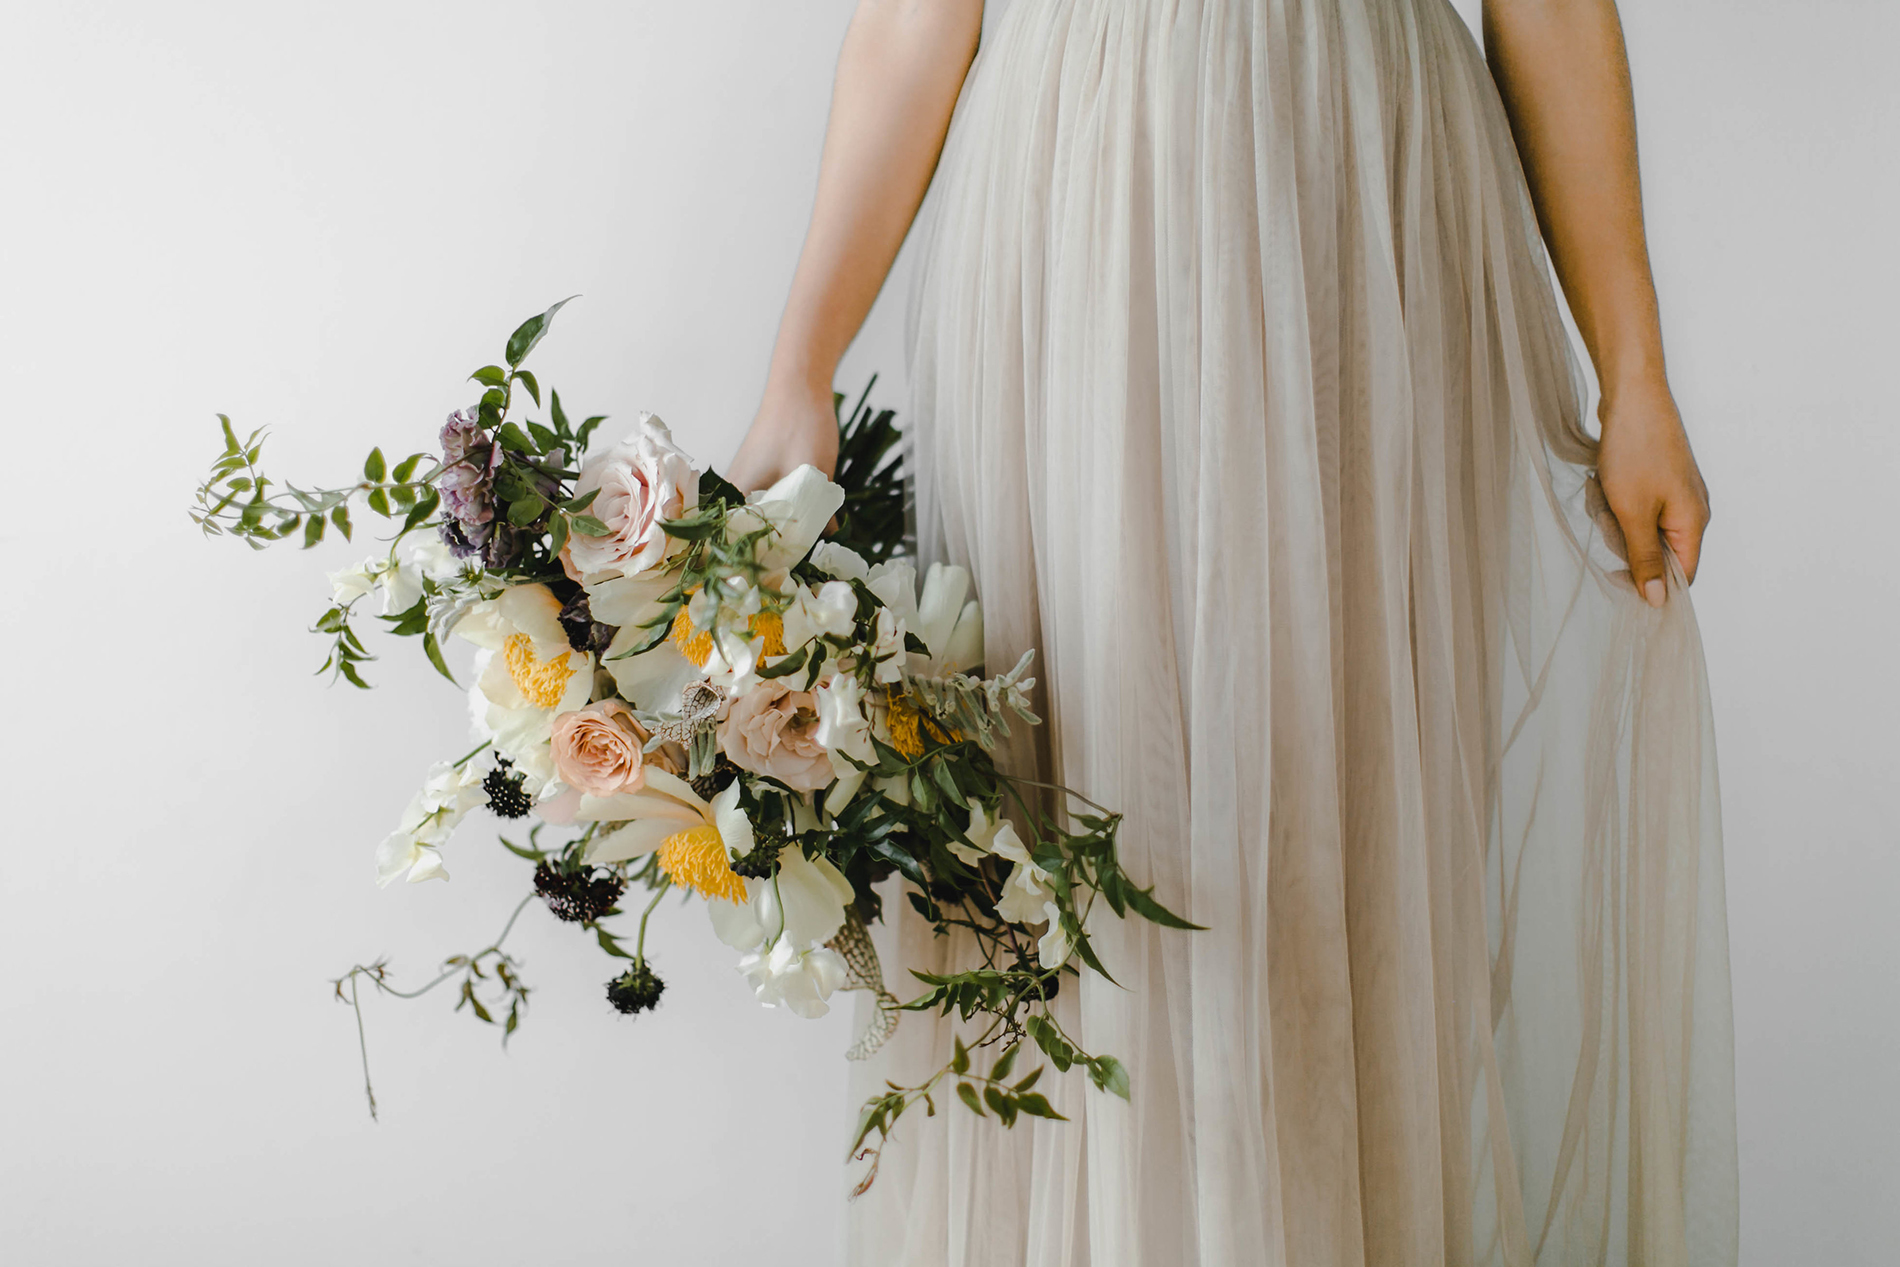 Photo by Melody Joy Co, Florals by Splendor of Eden